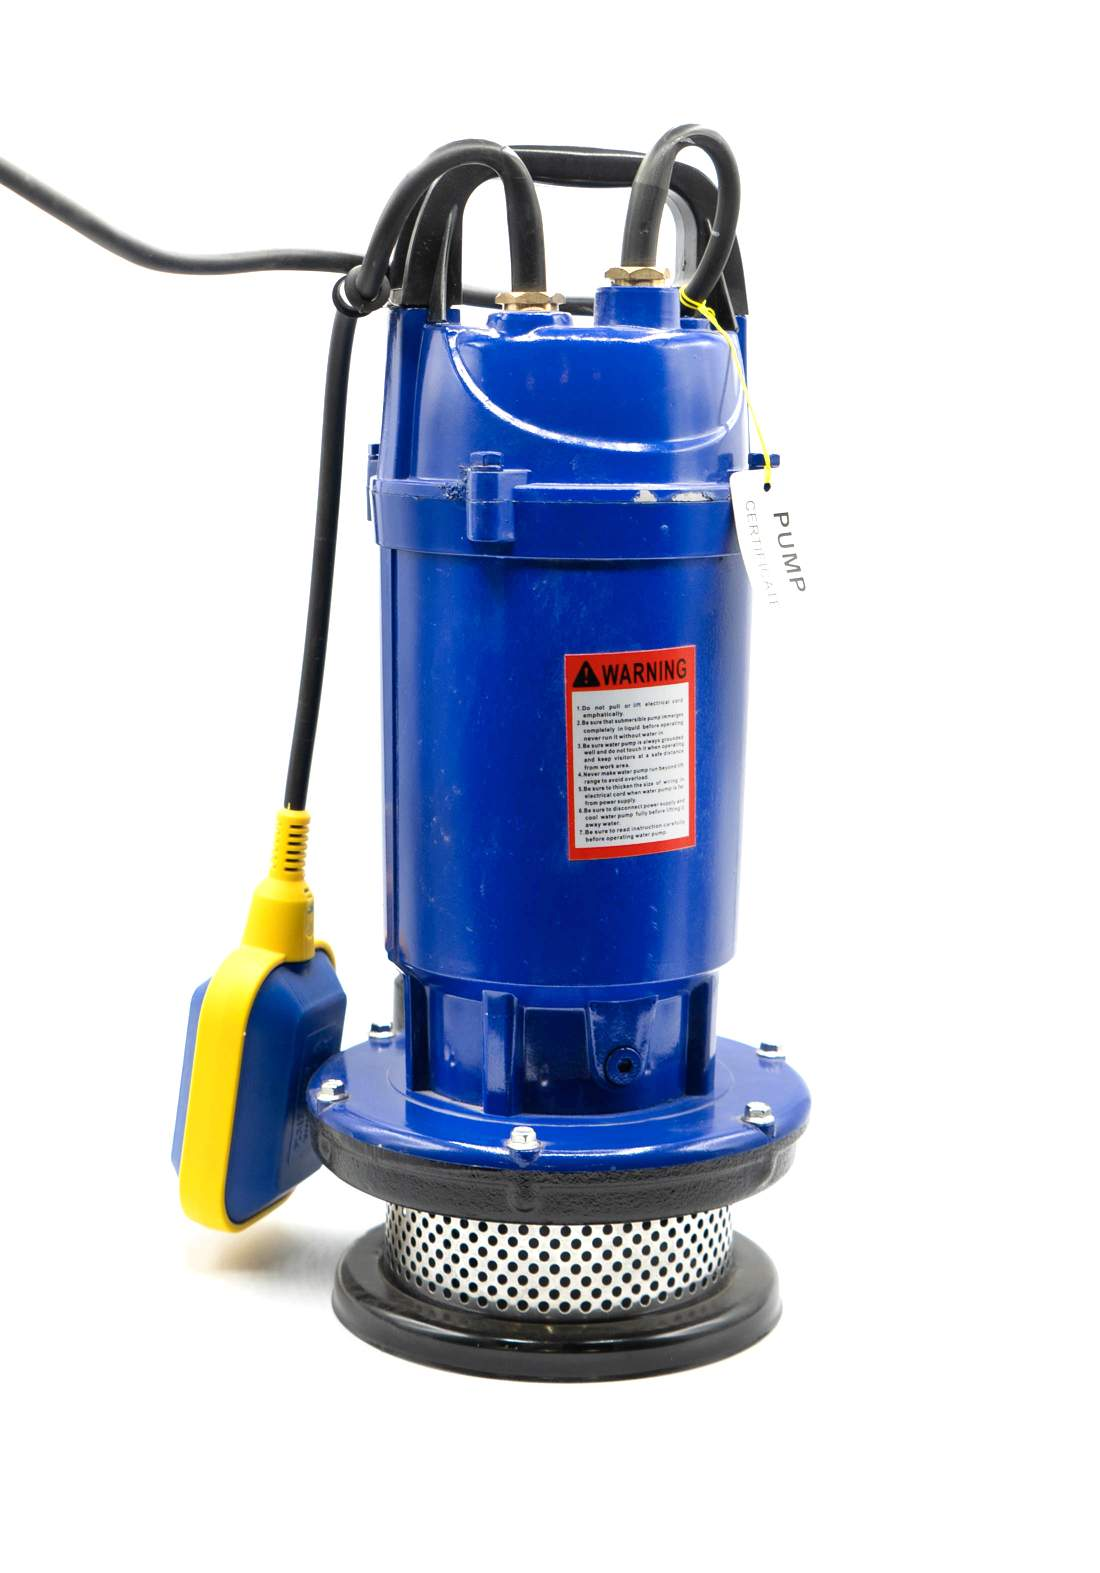 Sali W32100DX Submersible Water Pump QDX9m³/s ماطور ماء غطاس